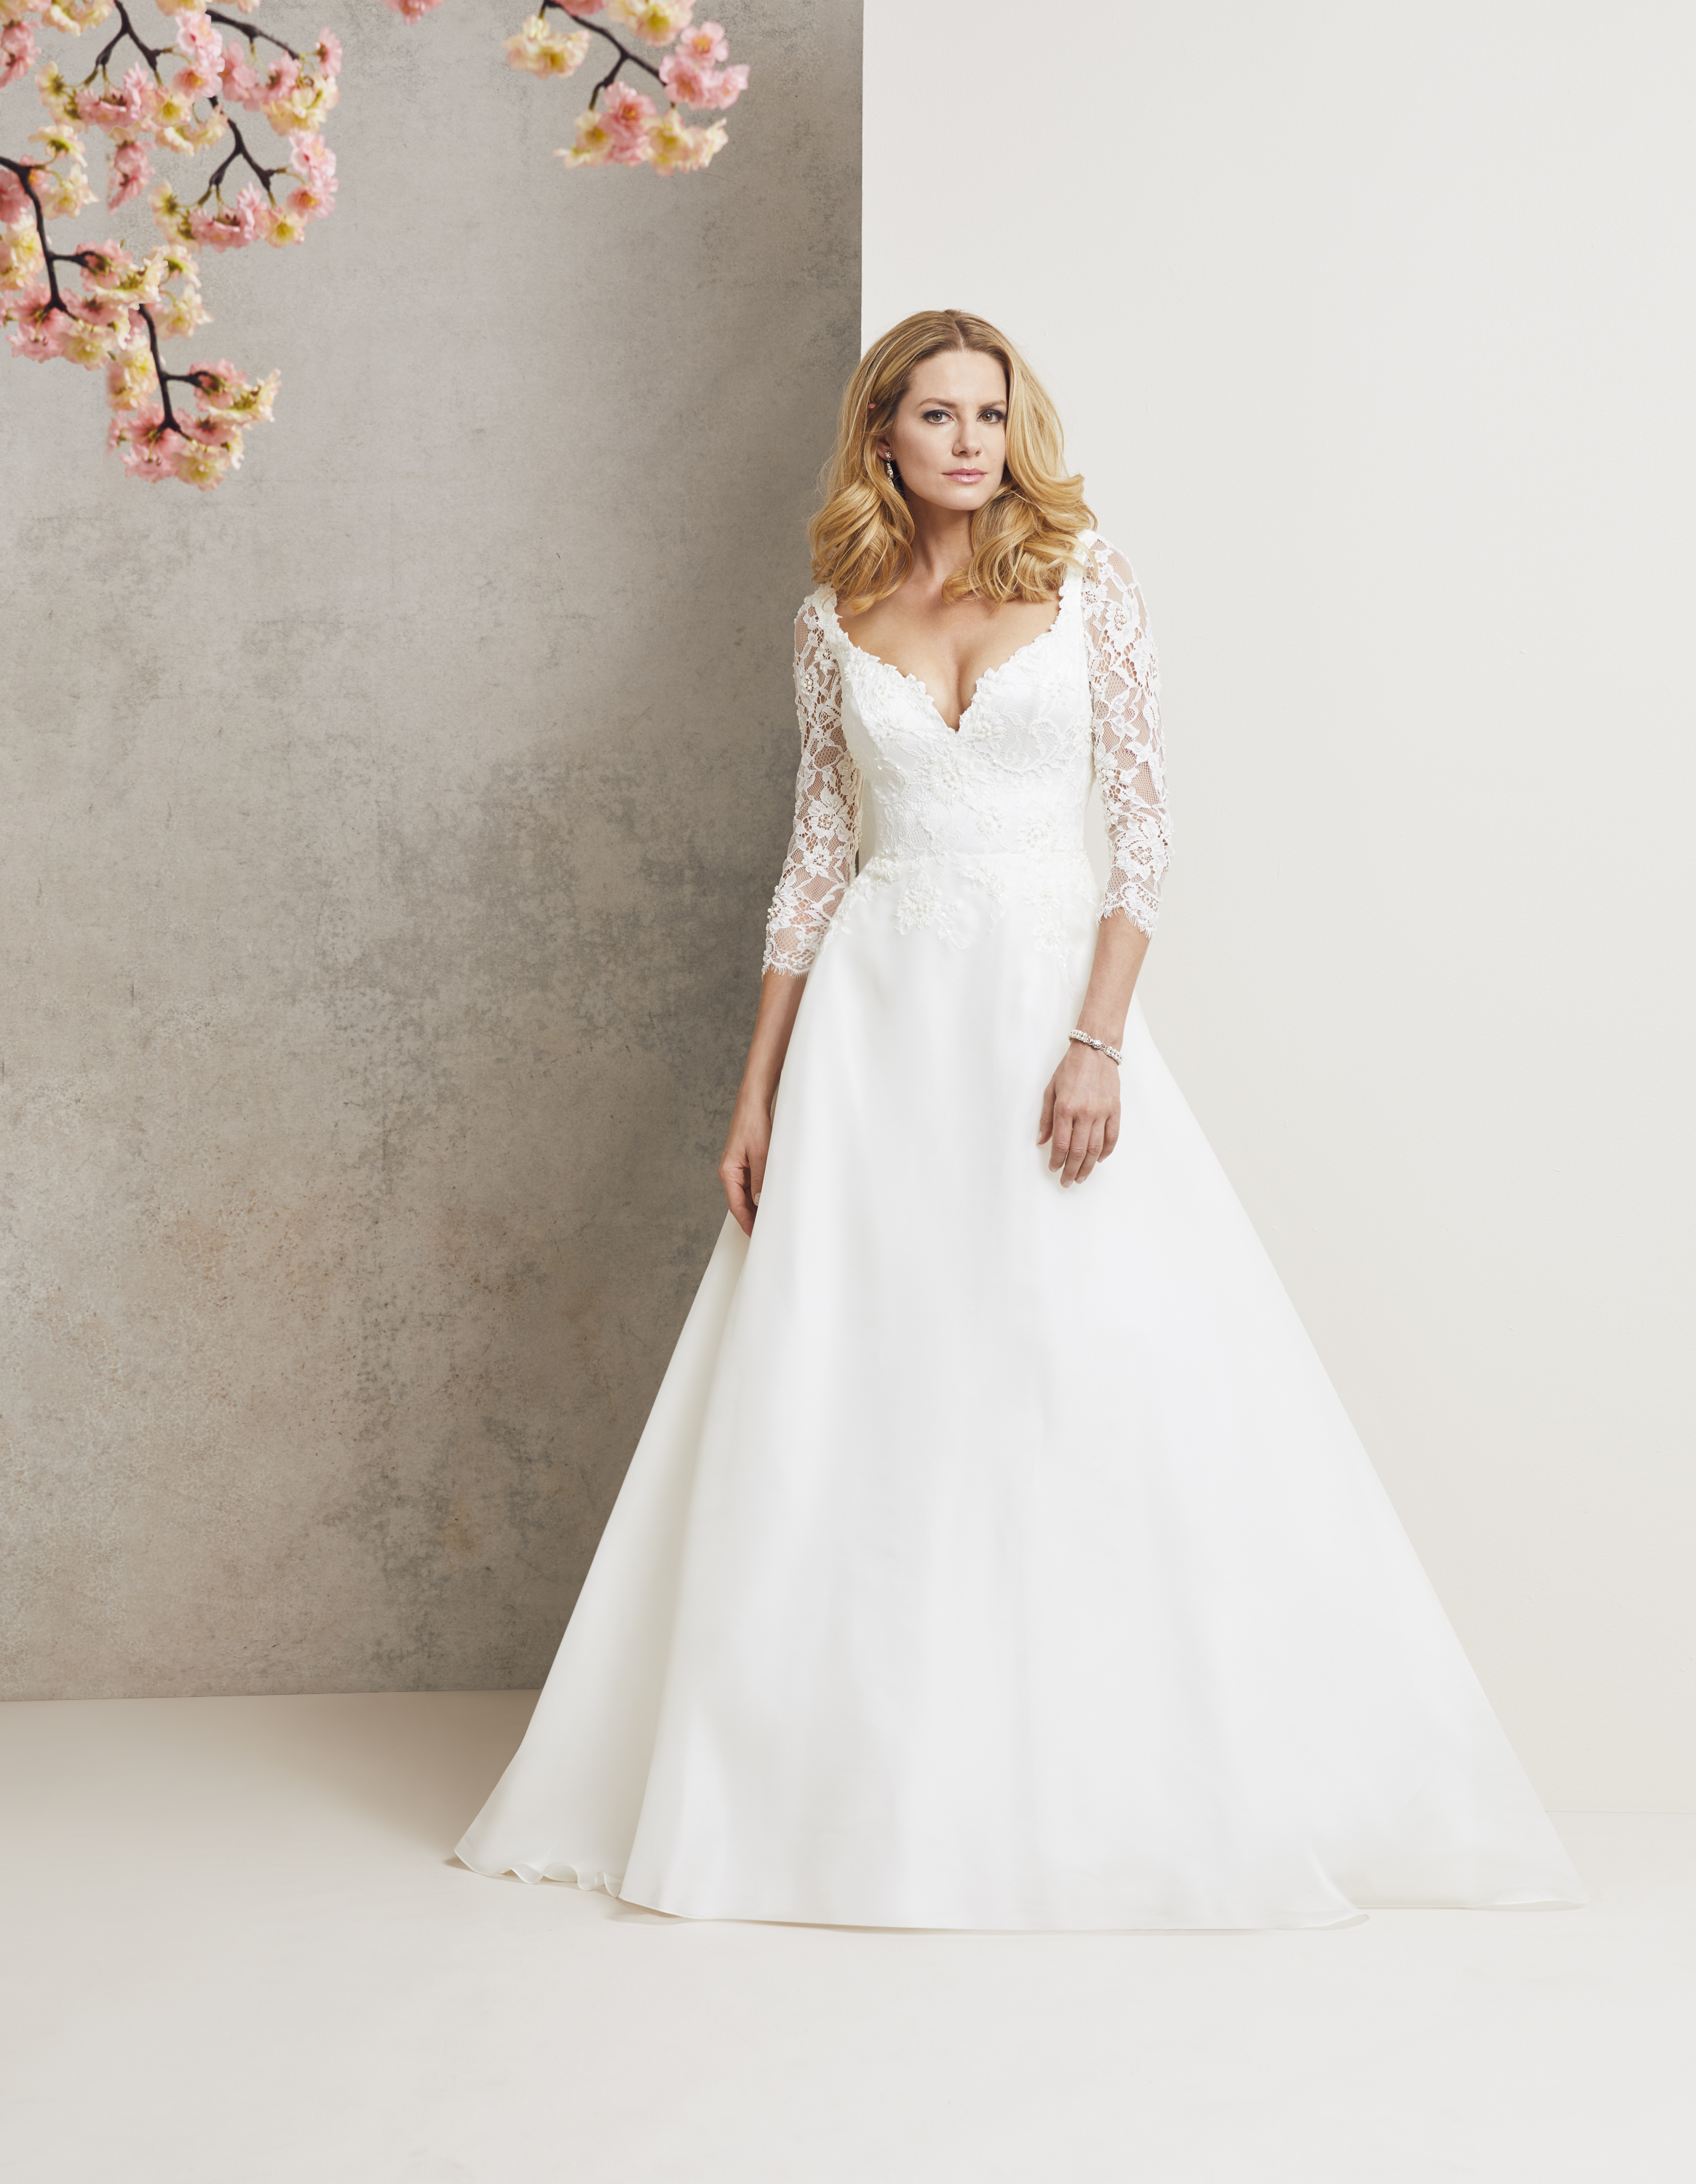 Monarchy designer wedding dress by Caroline Castigliano